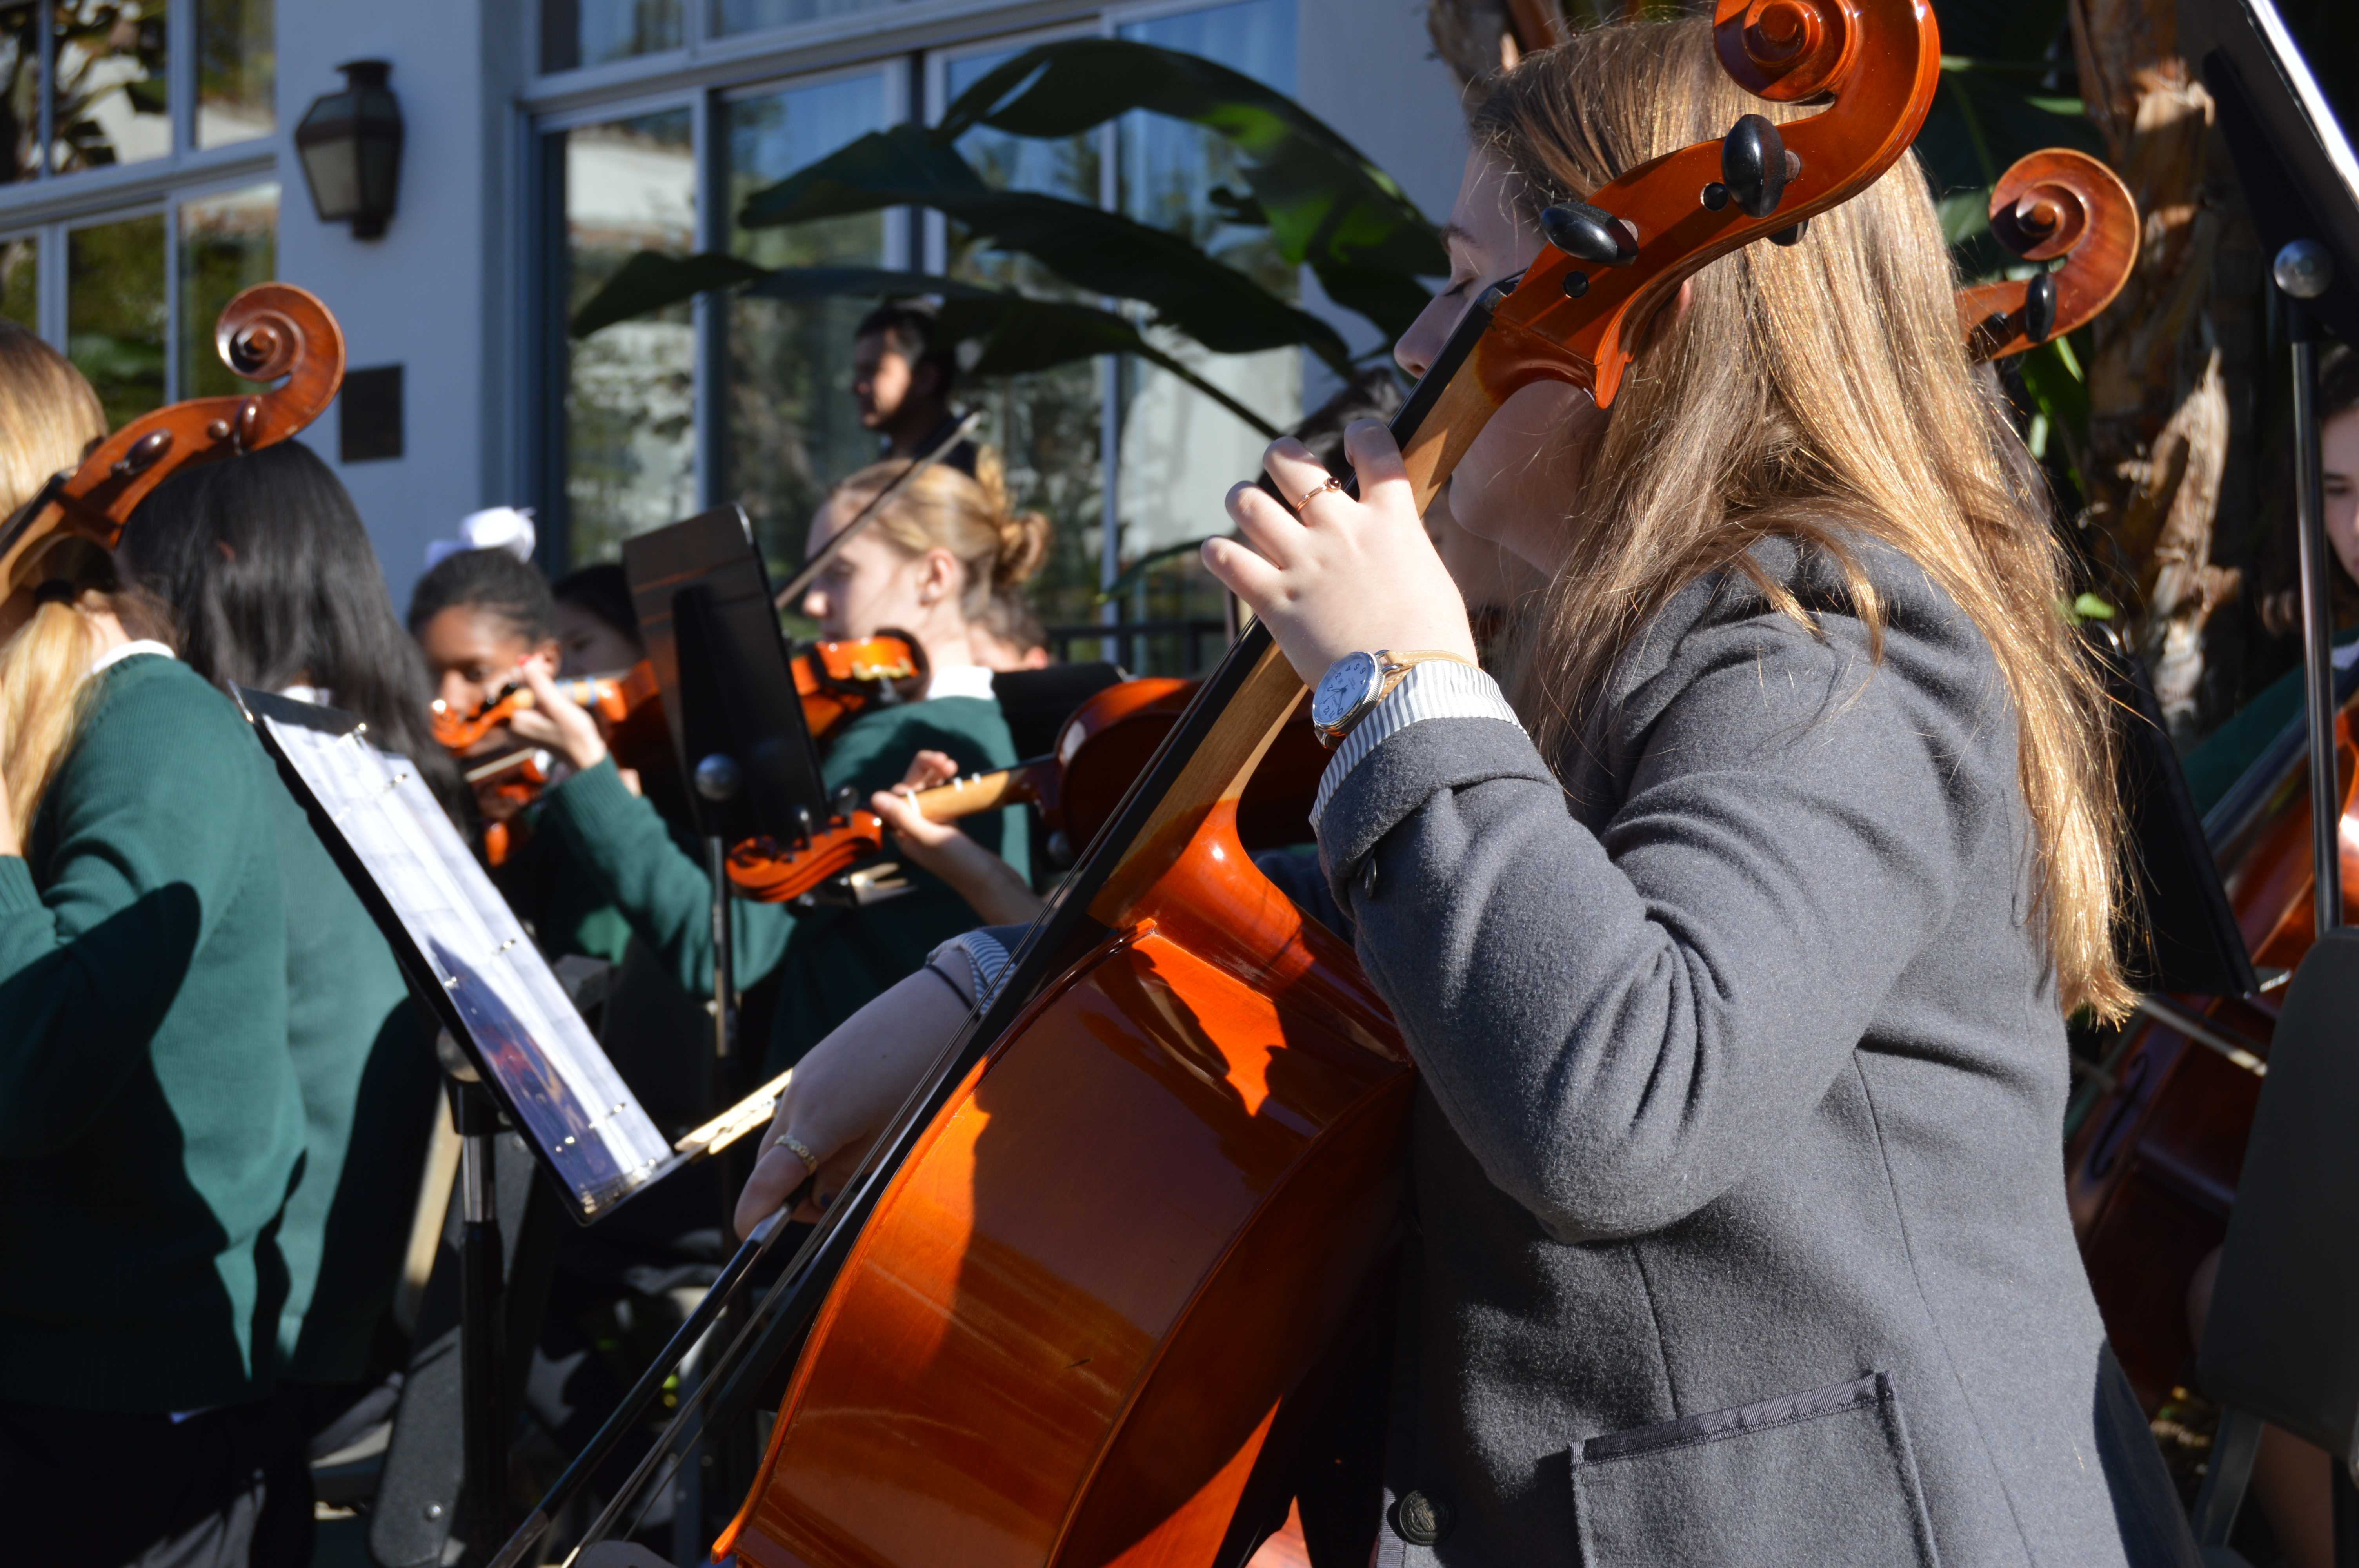 Upper+School+Orchestra+members+perform+a+classical+song+during+the+ceremony.+Photographer%3A+Nelly+Rouzroch+%2718